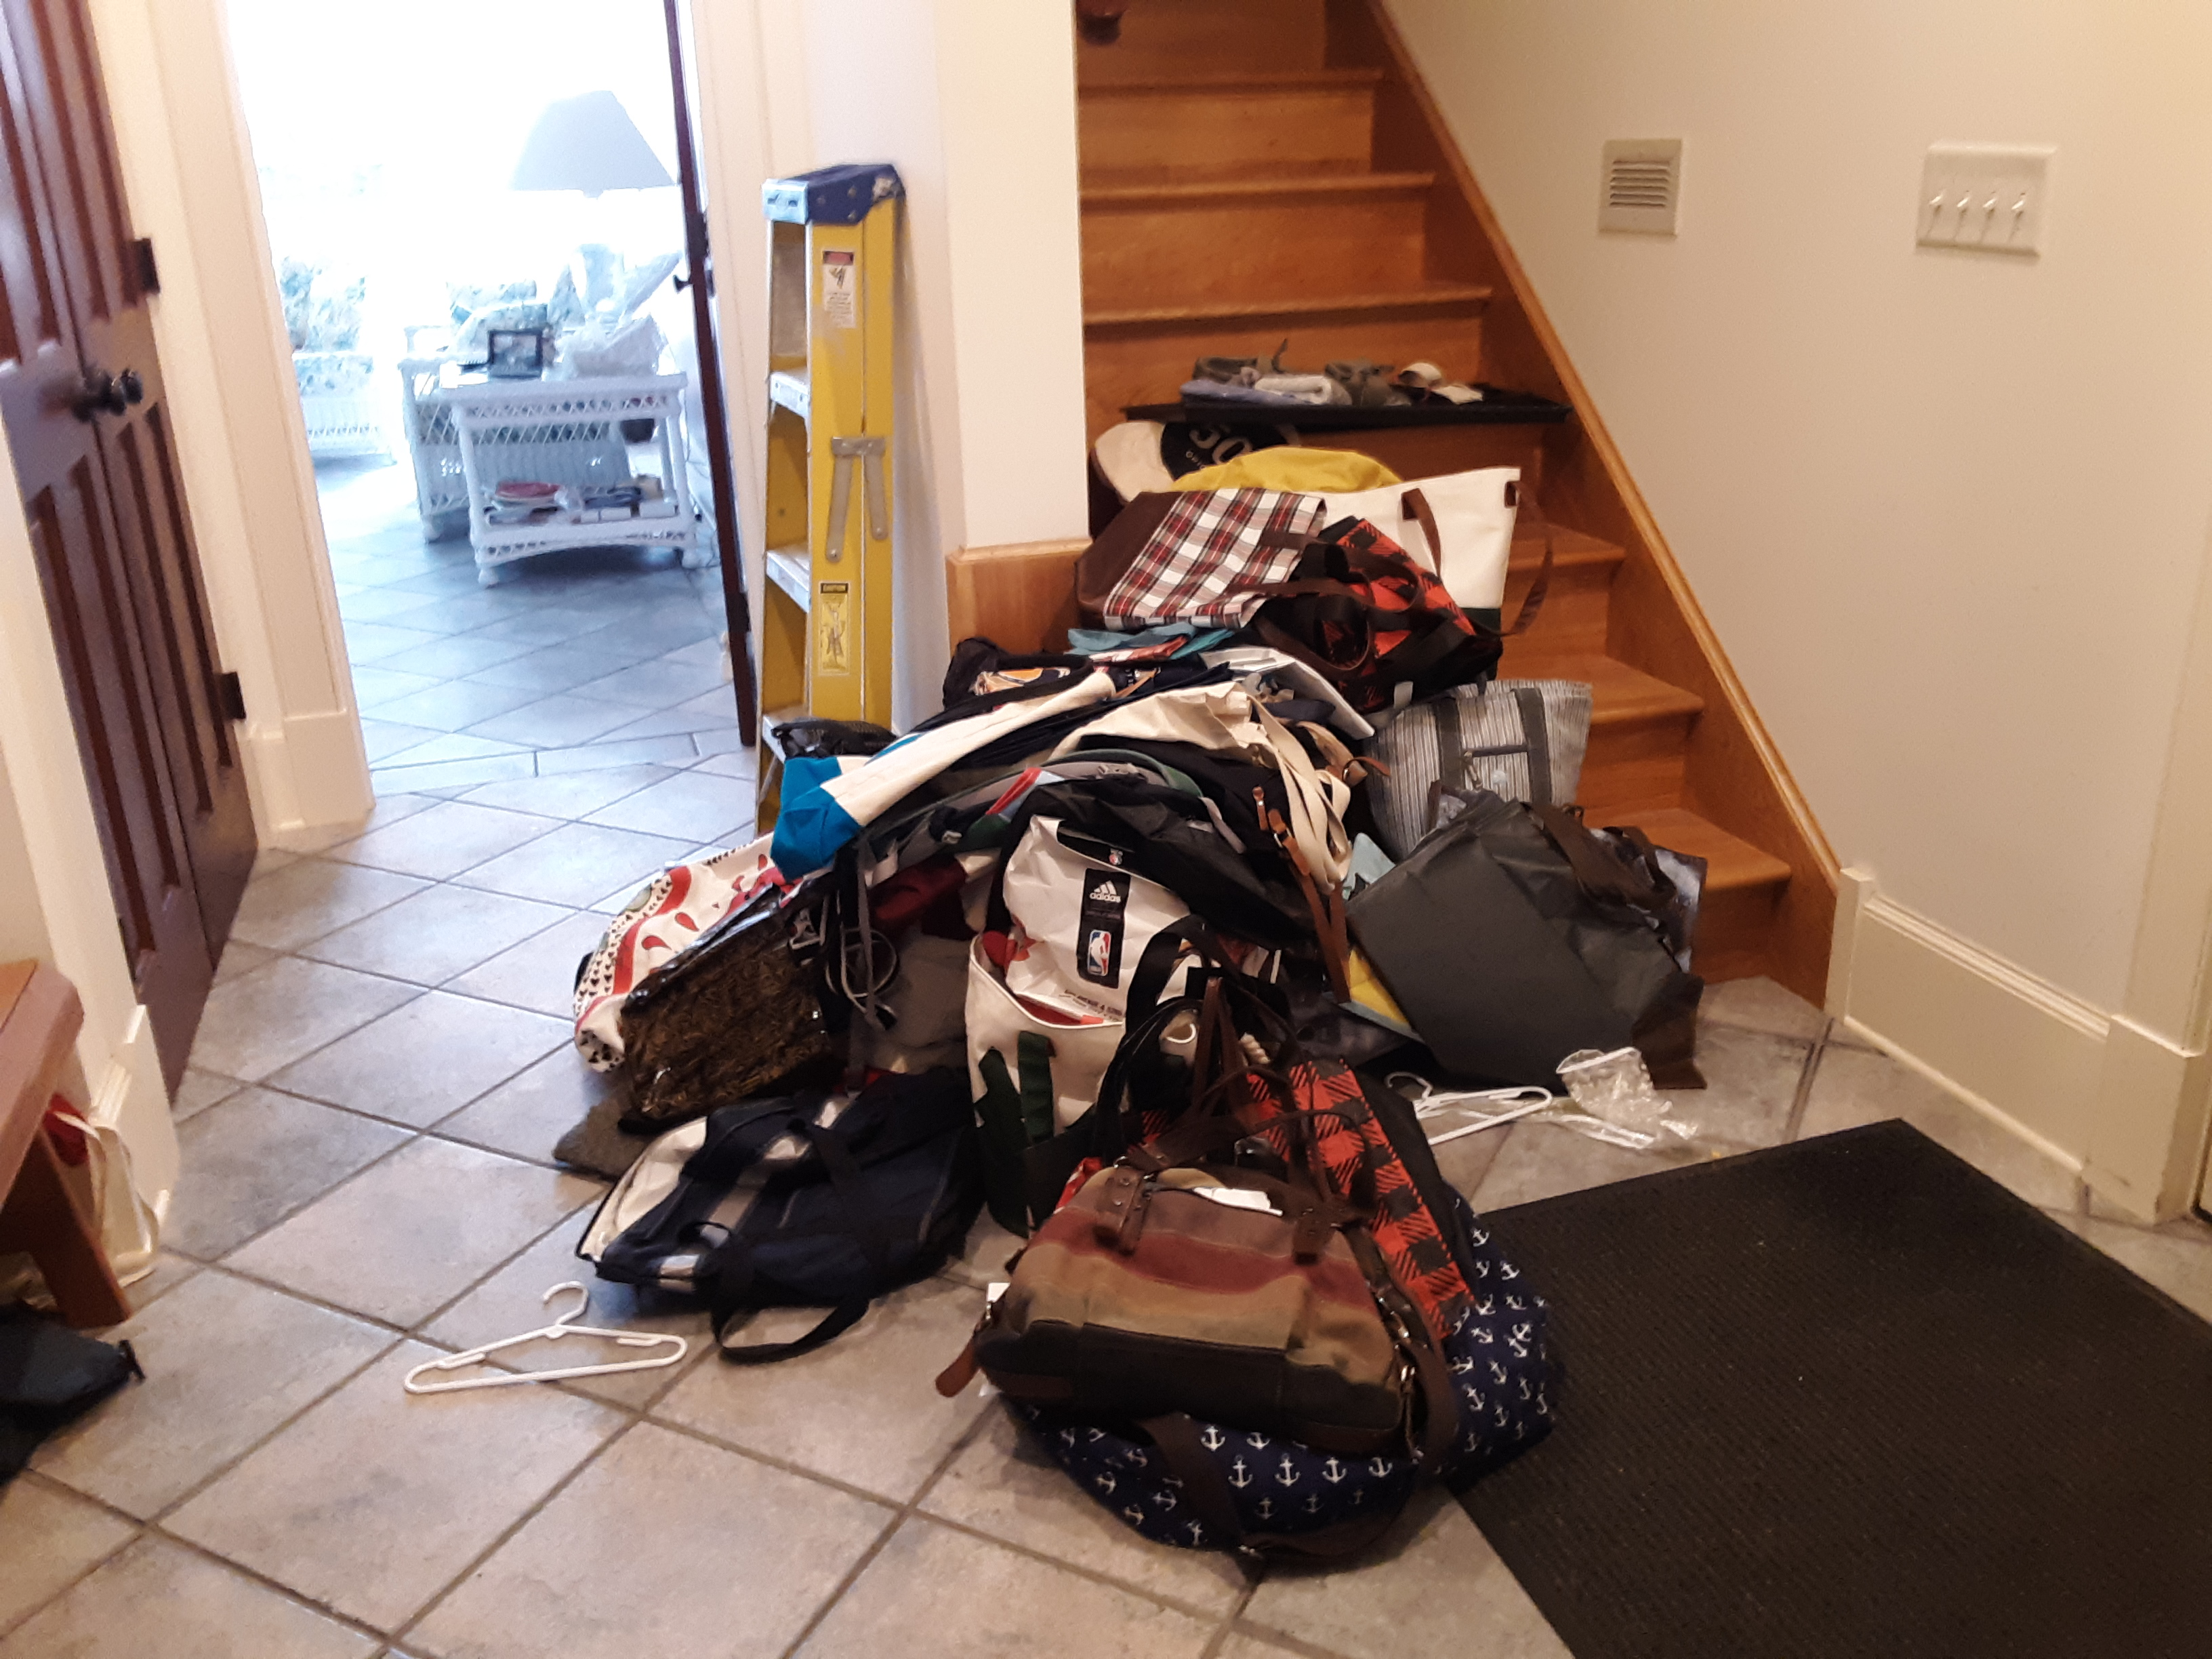 Closet clutter about to be gone!